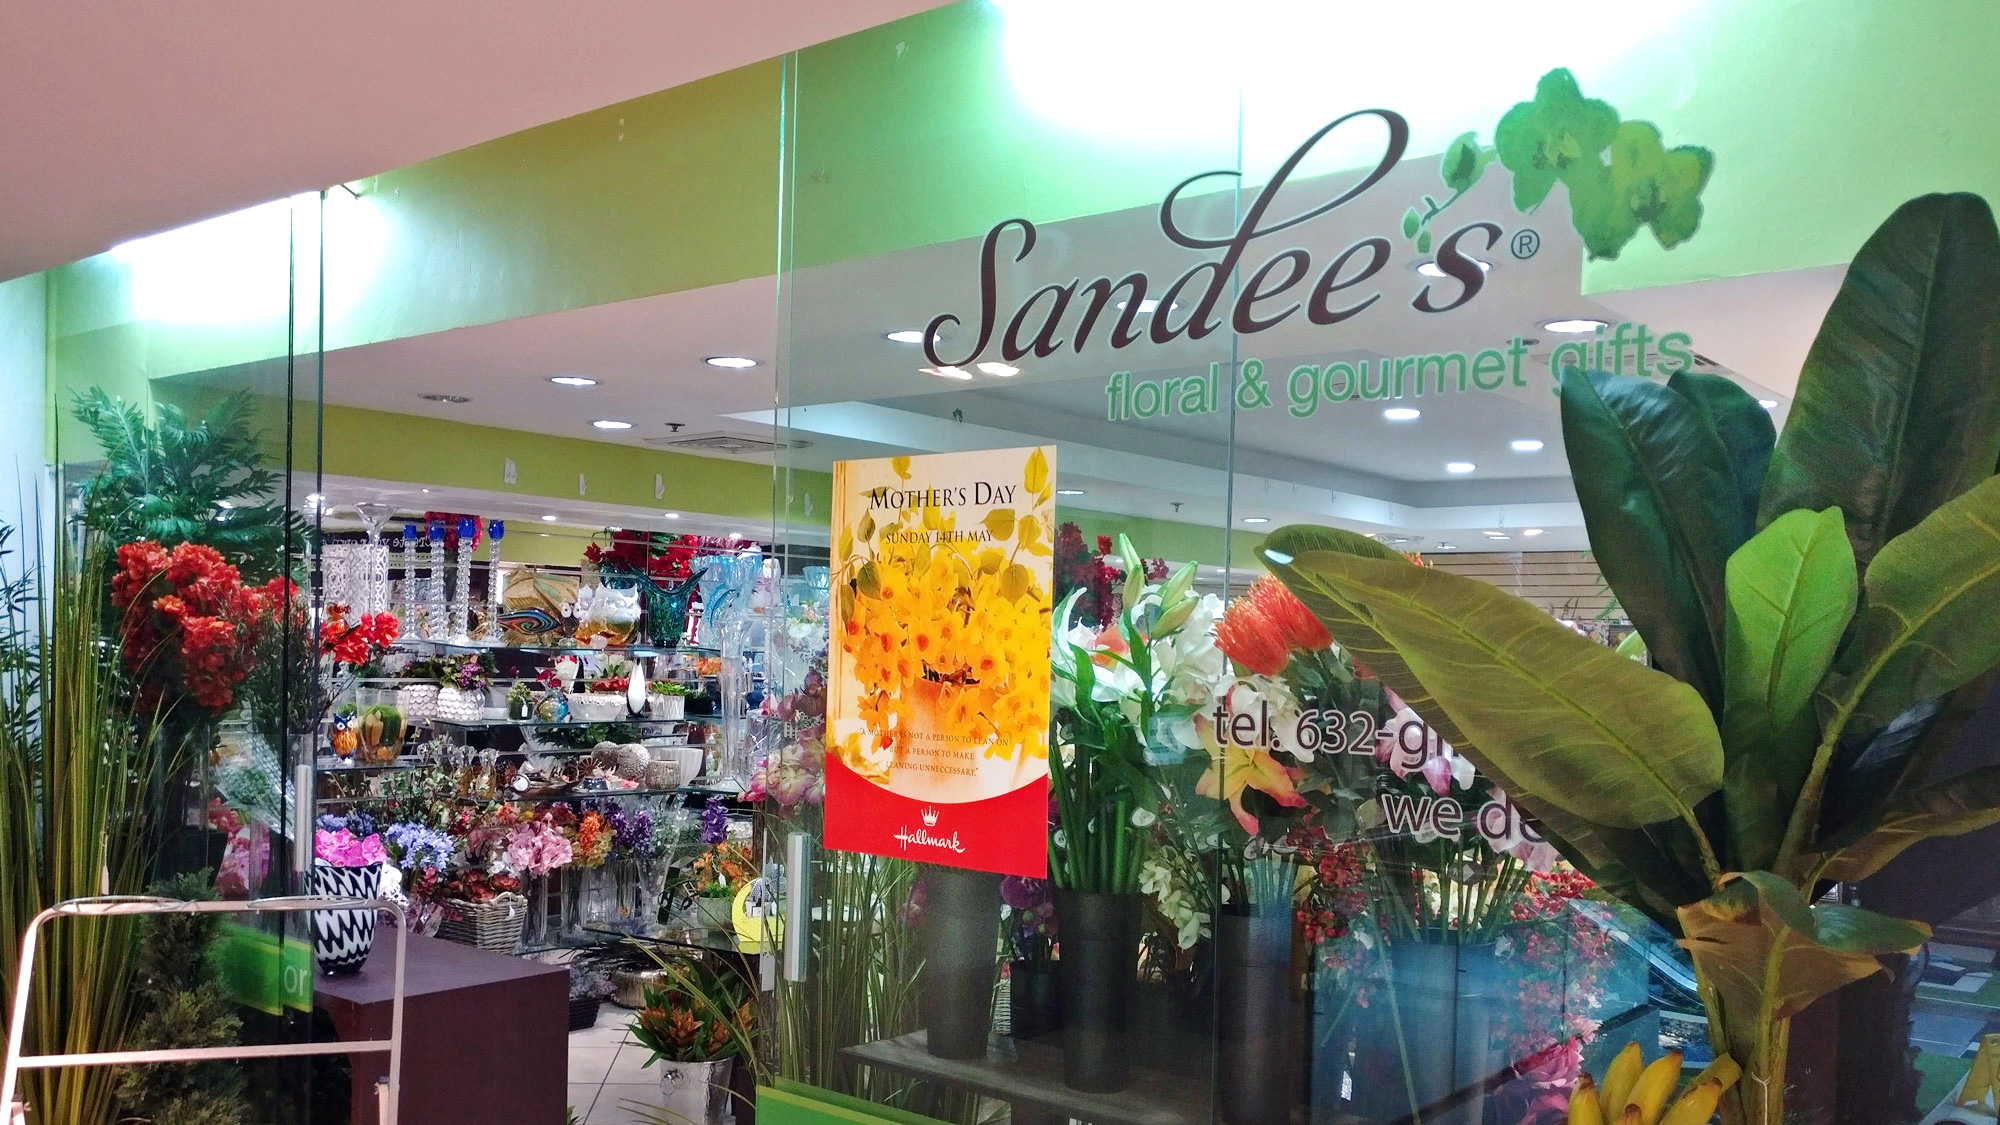 Sandee's Floral & Gourmet Gifts